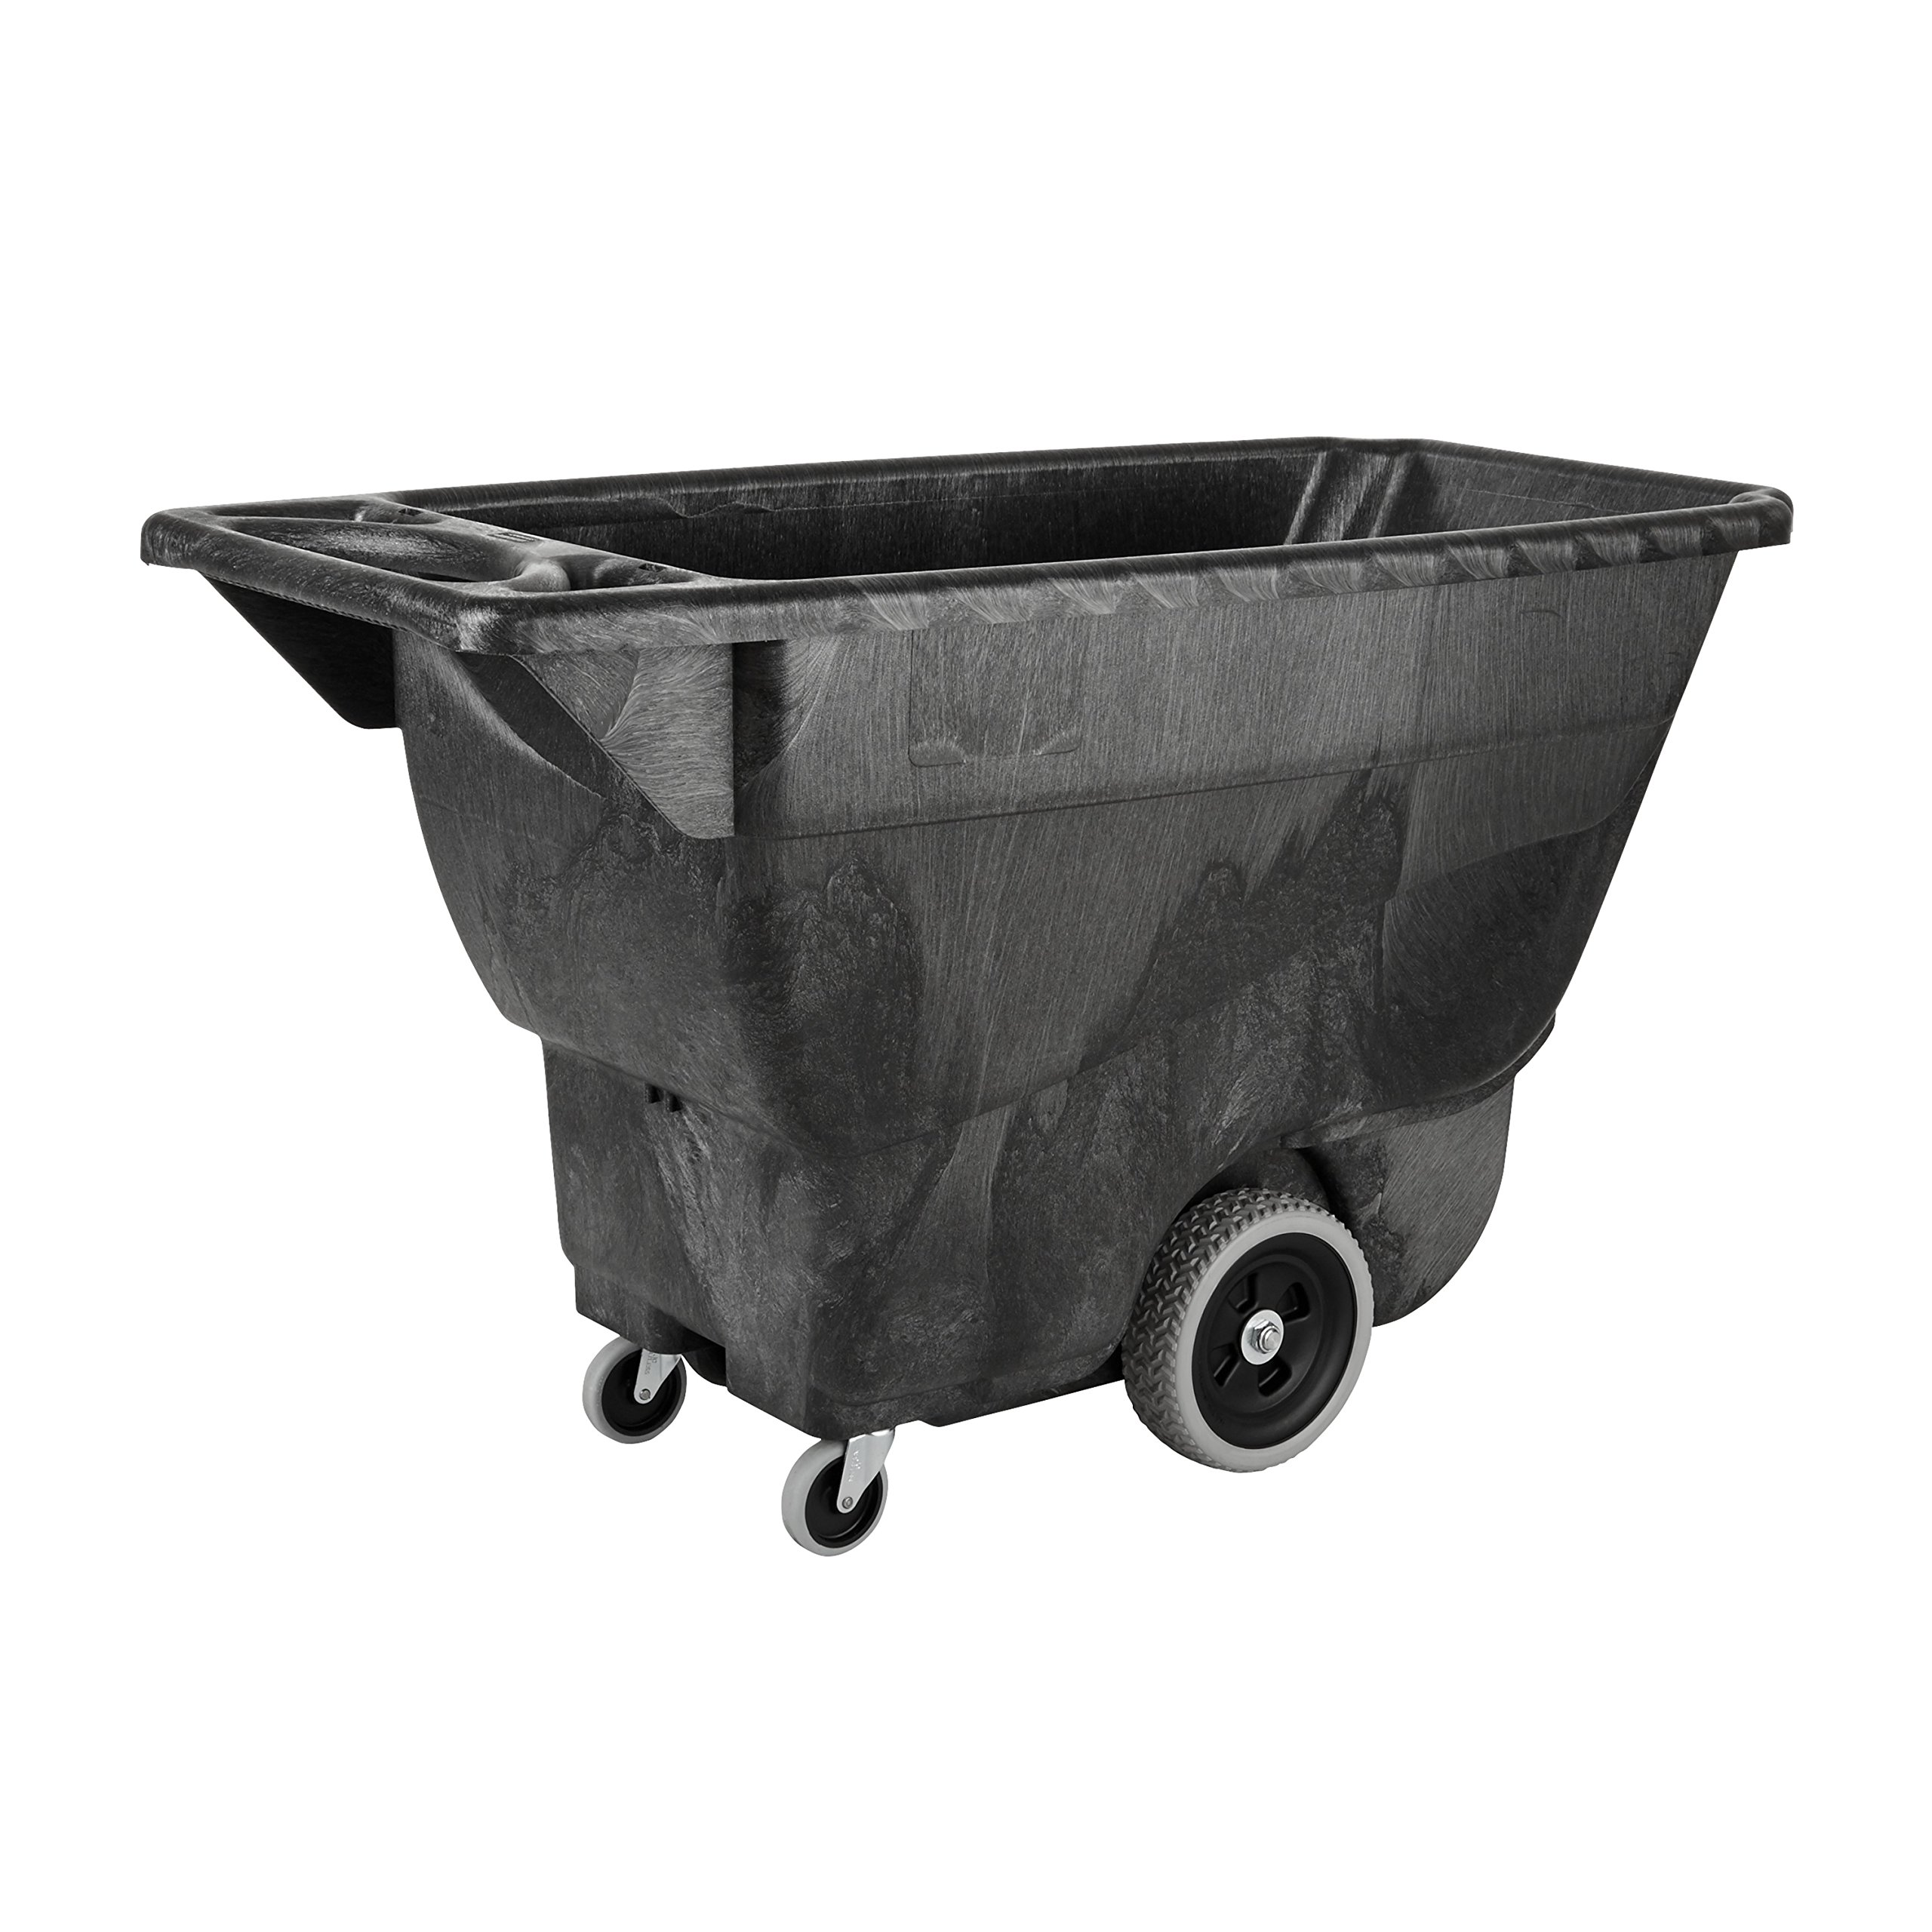 Rubbermaid Commercial Polyethylene Box Cart, 450 lbs Load Capacity, Black, (FG9T1300BLA)